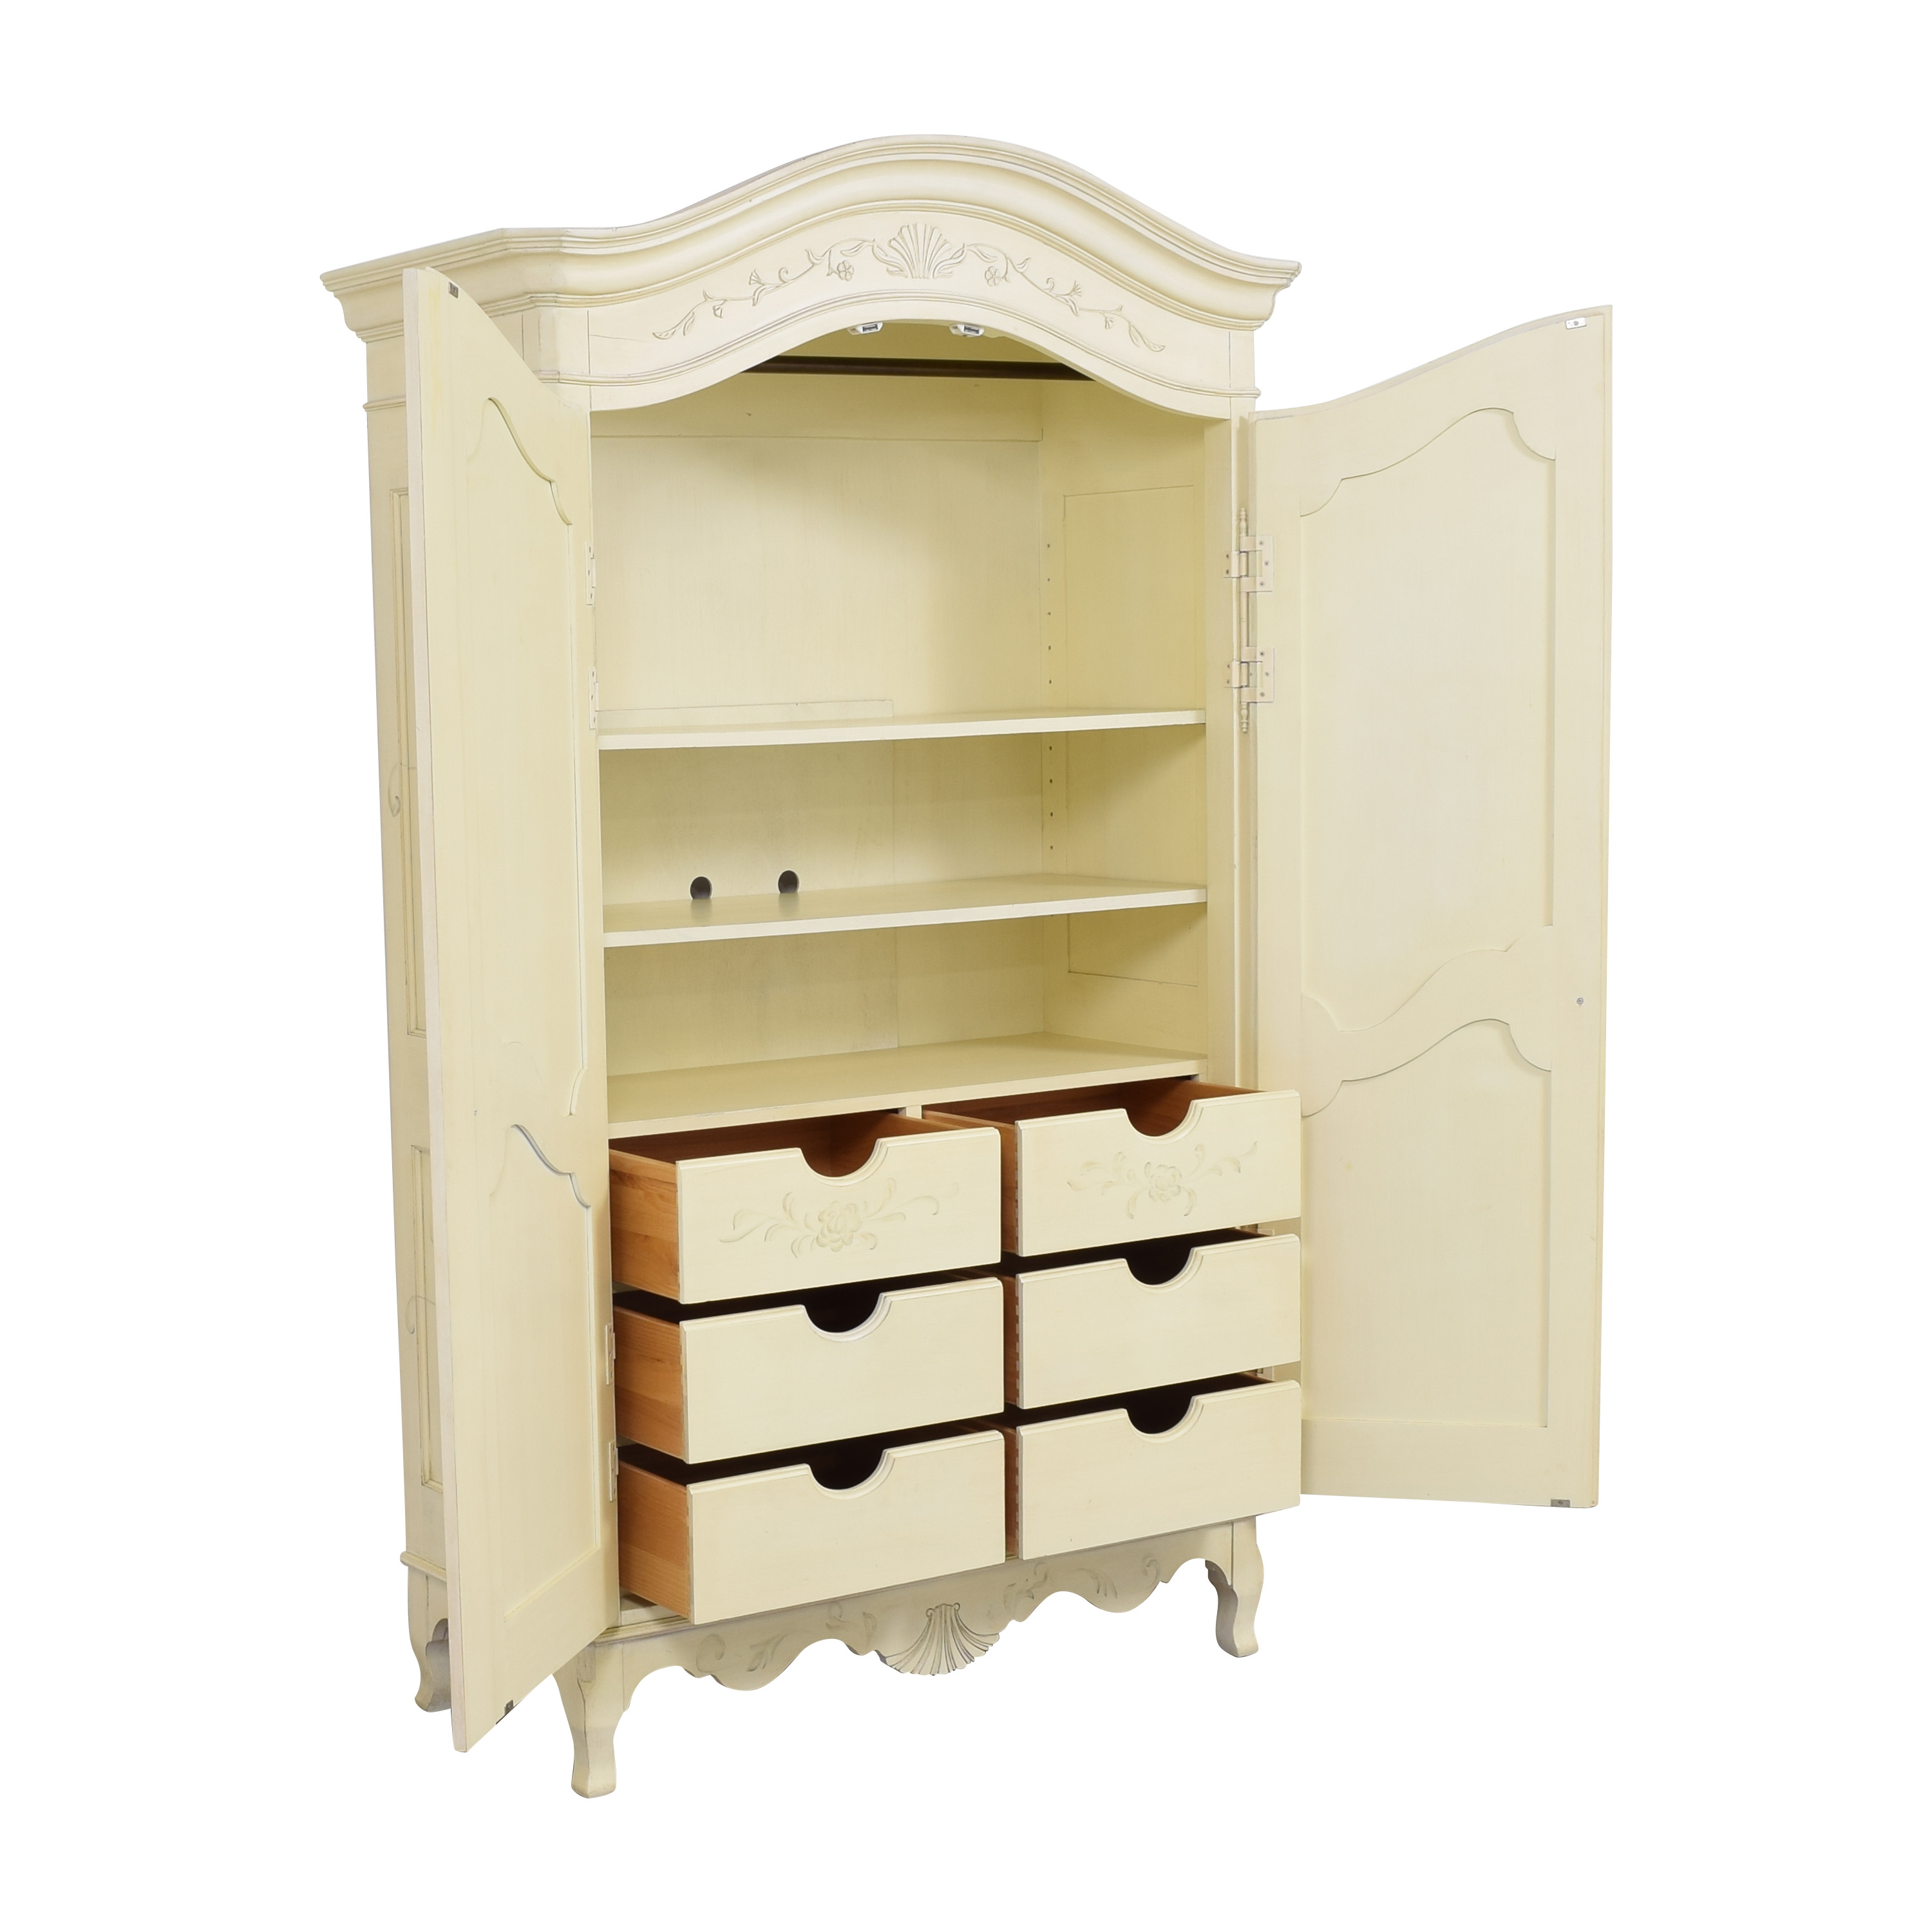 Ethan Allen Ethan Allen Decorated Country French Armoire price